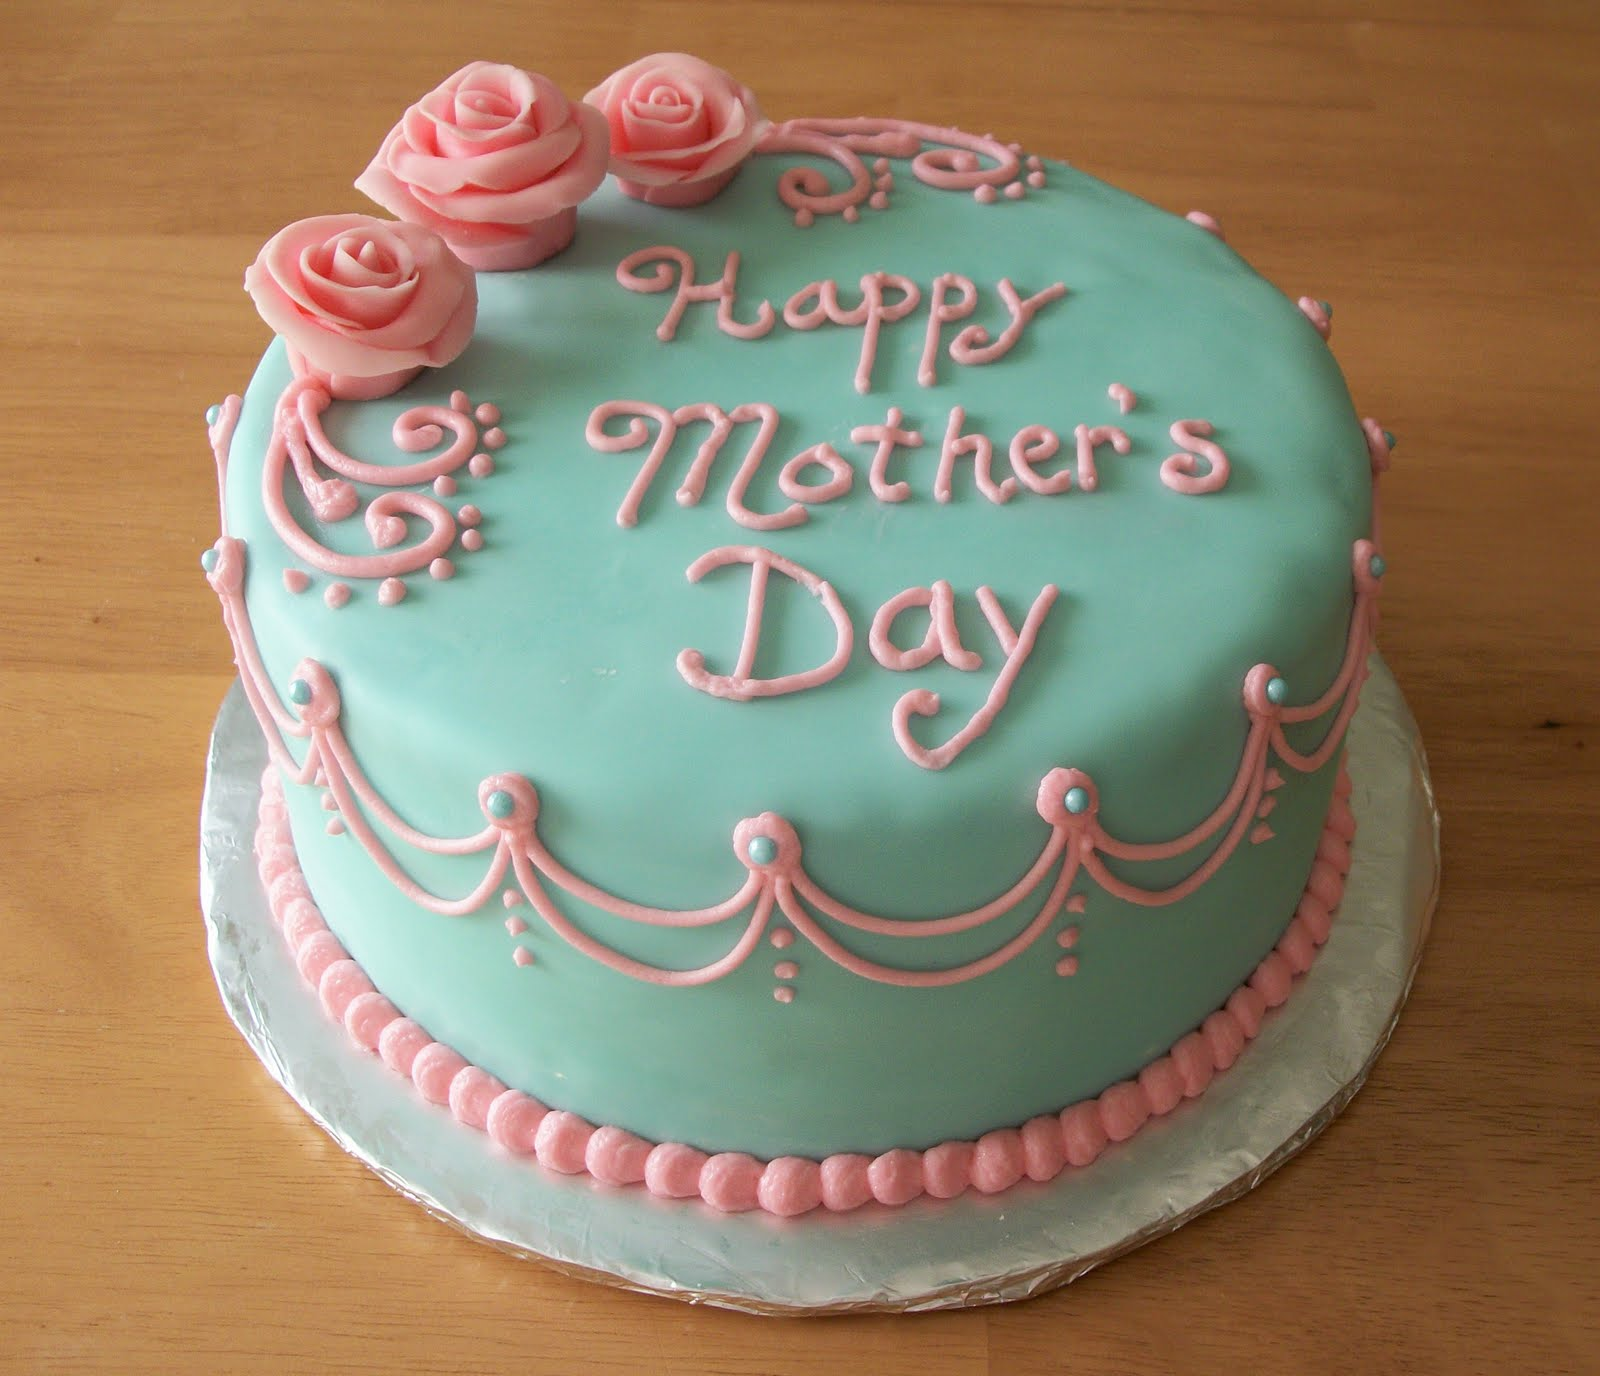 7 Photos of Cute Mother's Day Cakes